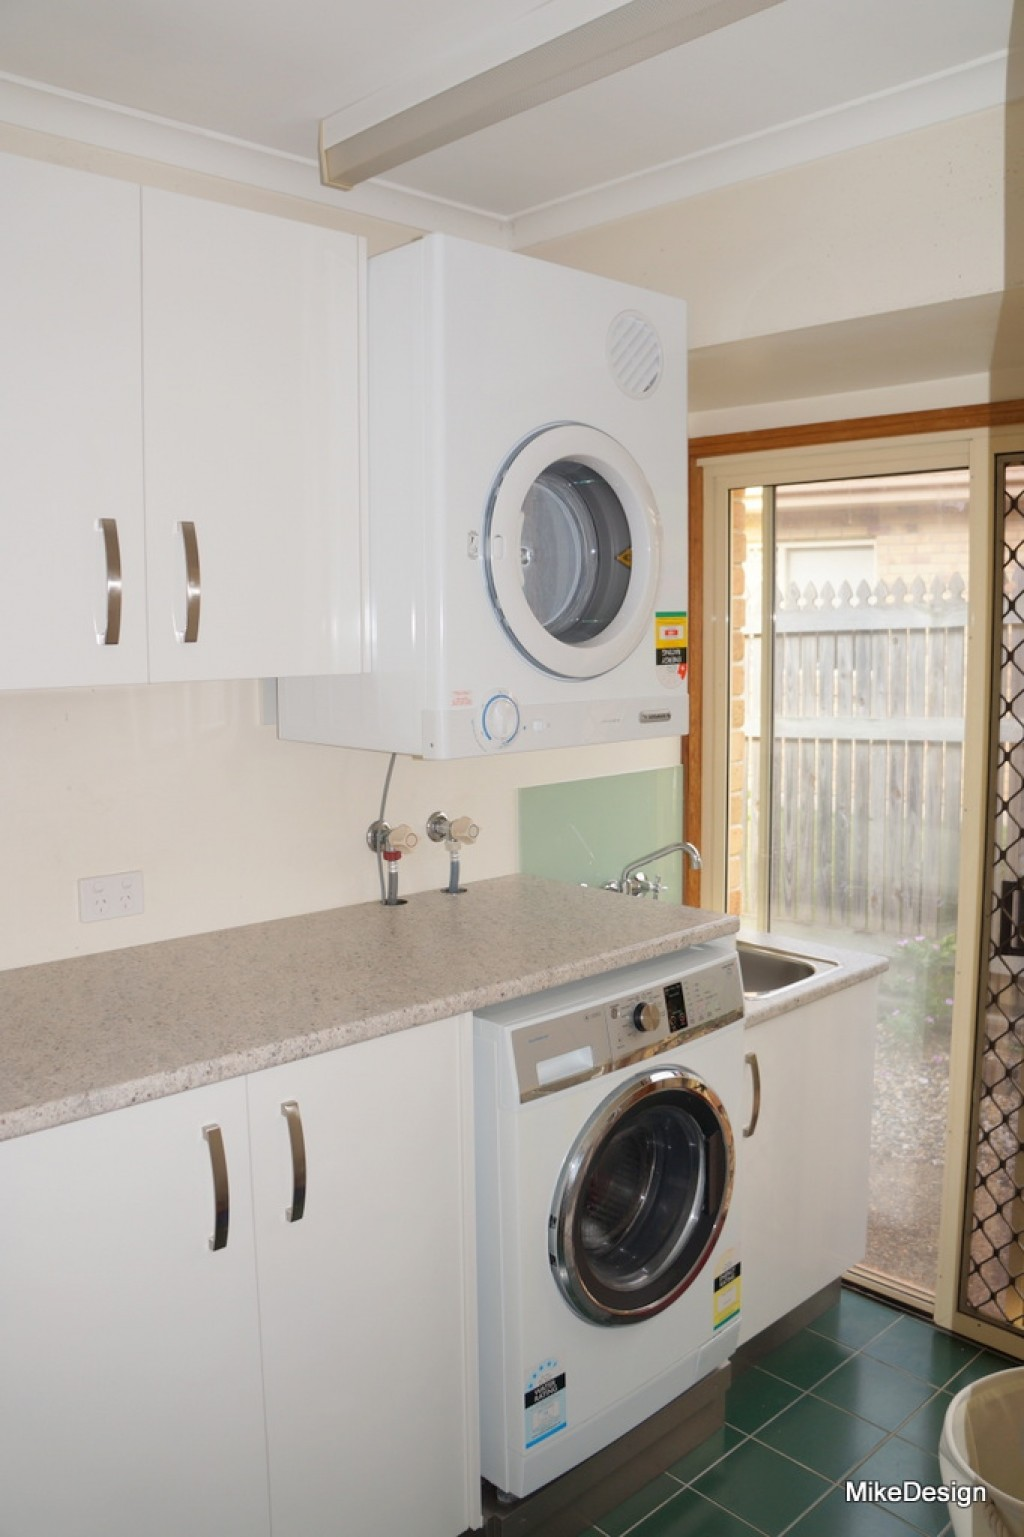 Laundry Room Design Top Loader Hanging Clothes